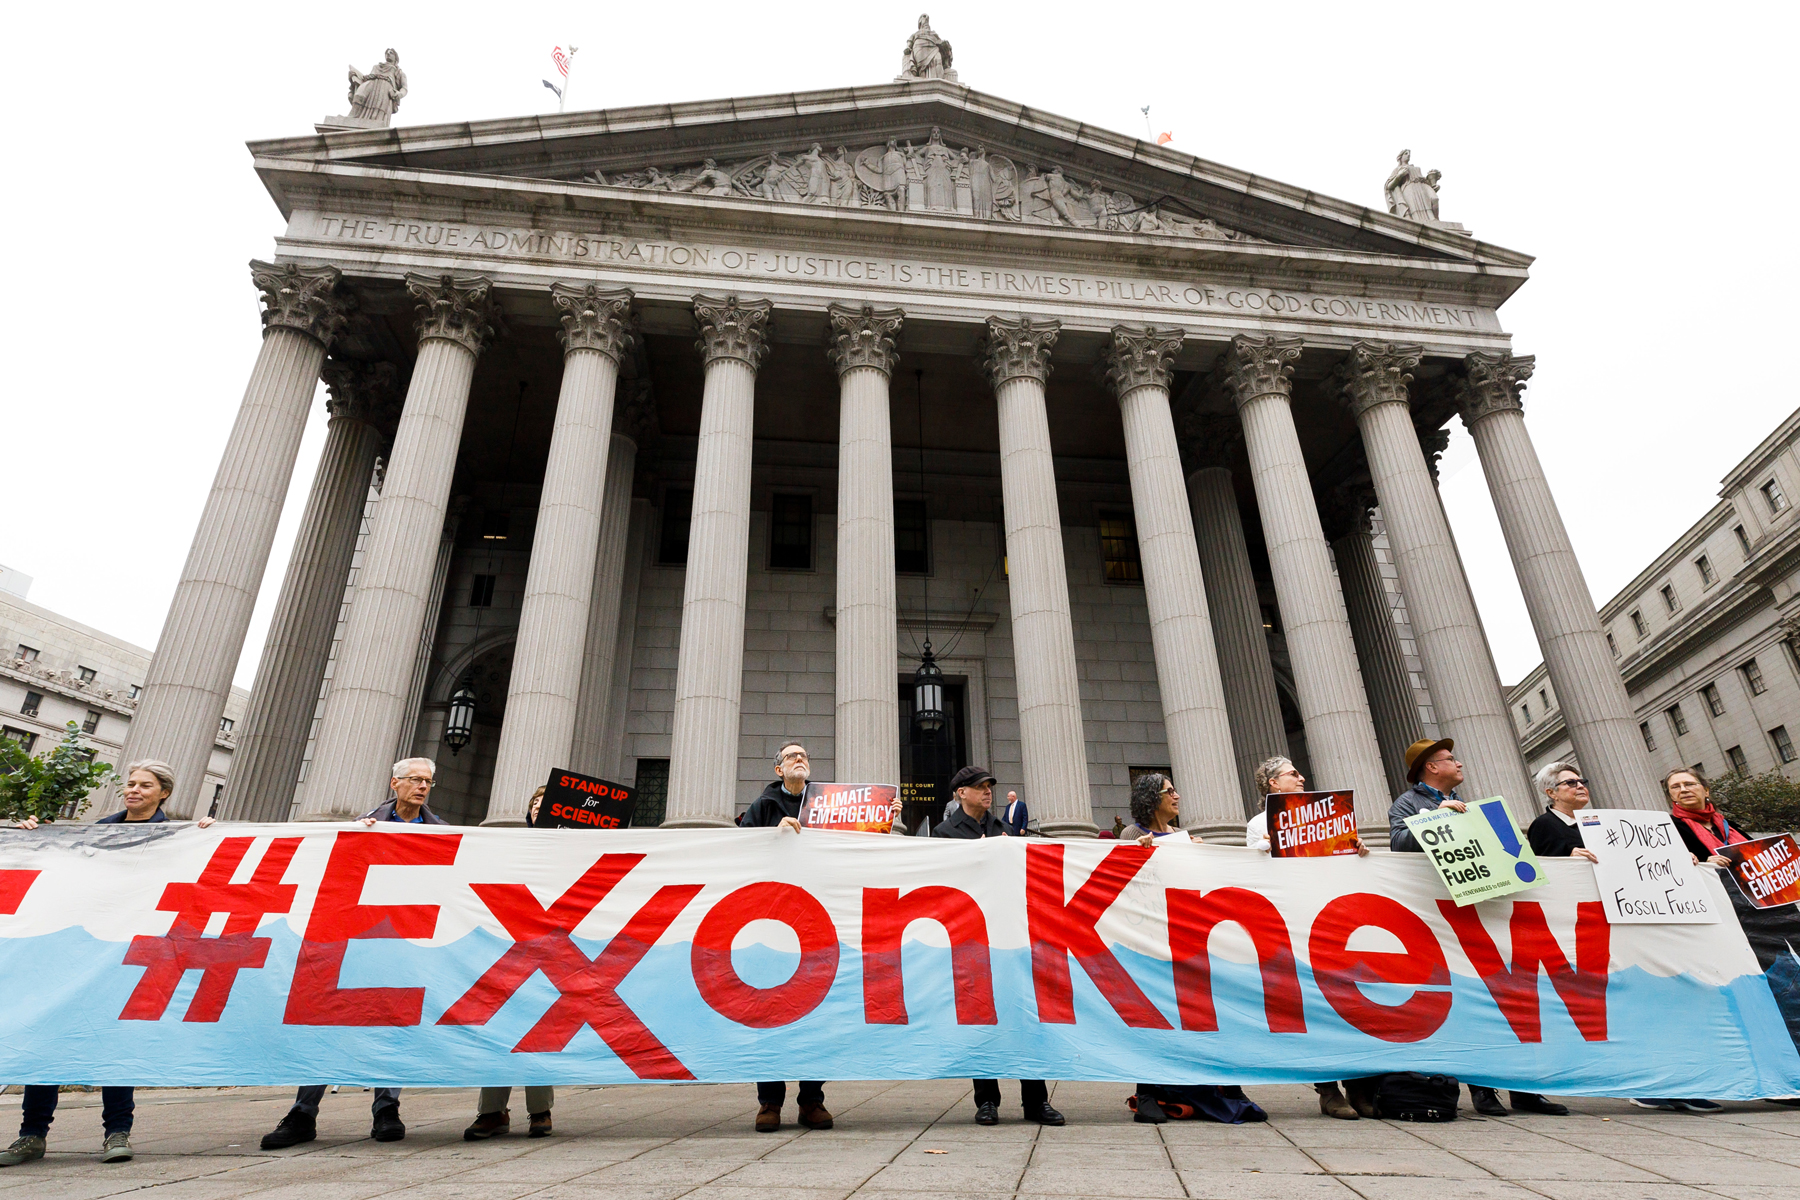 A group of protestors gather outside of a New York City courthouse for a rally coinciding with the start of a legal case against Exxon Mobile on October 22nd, 2019 in New York.